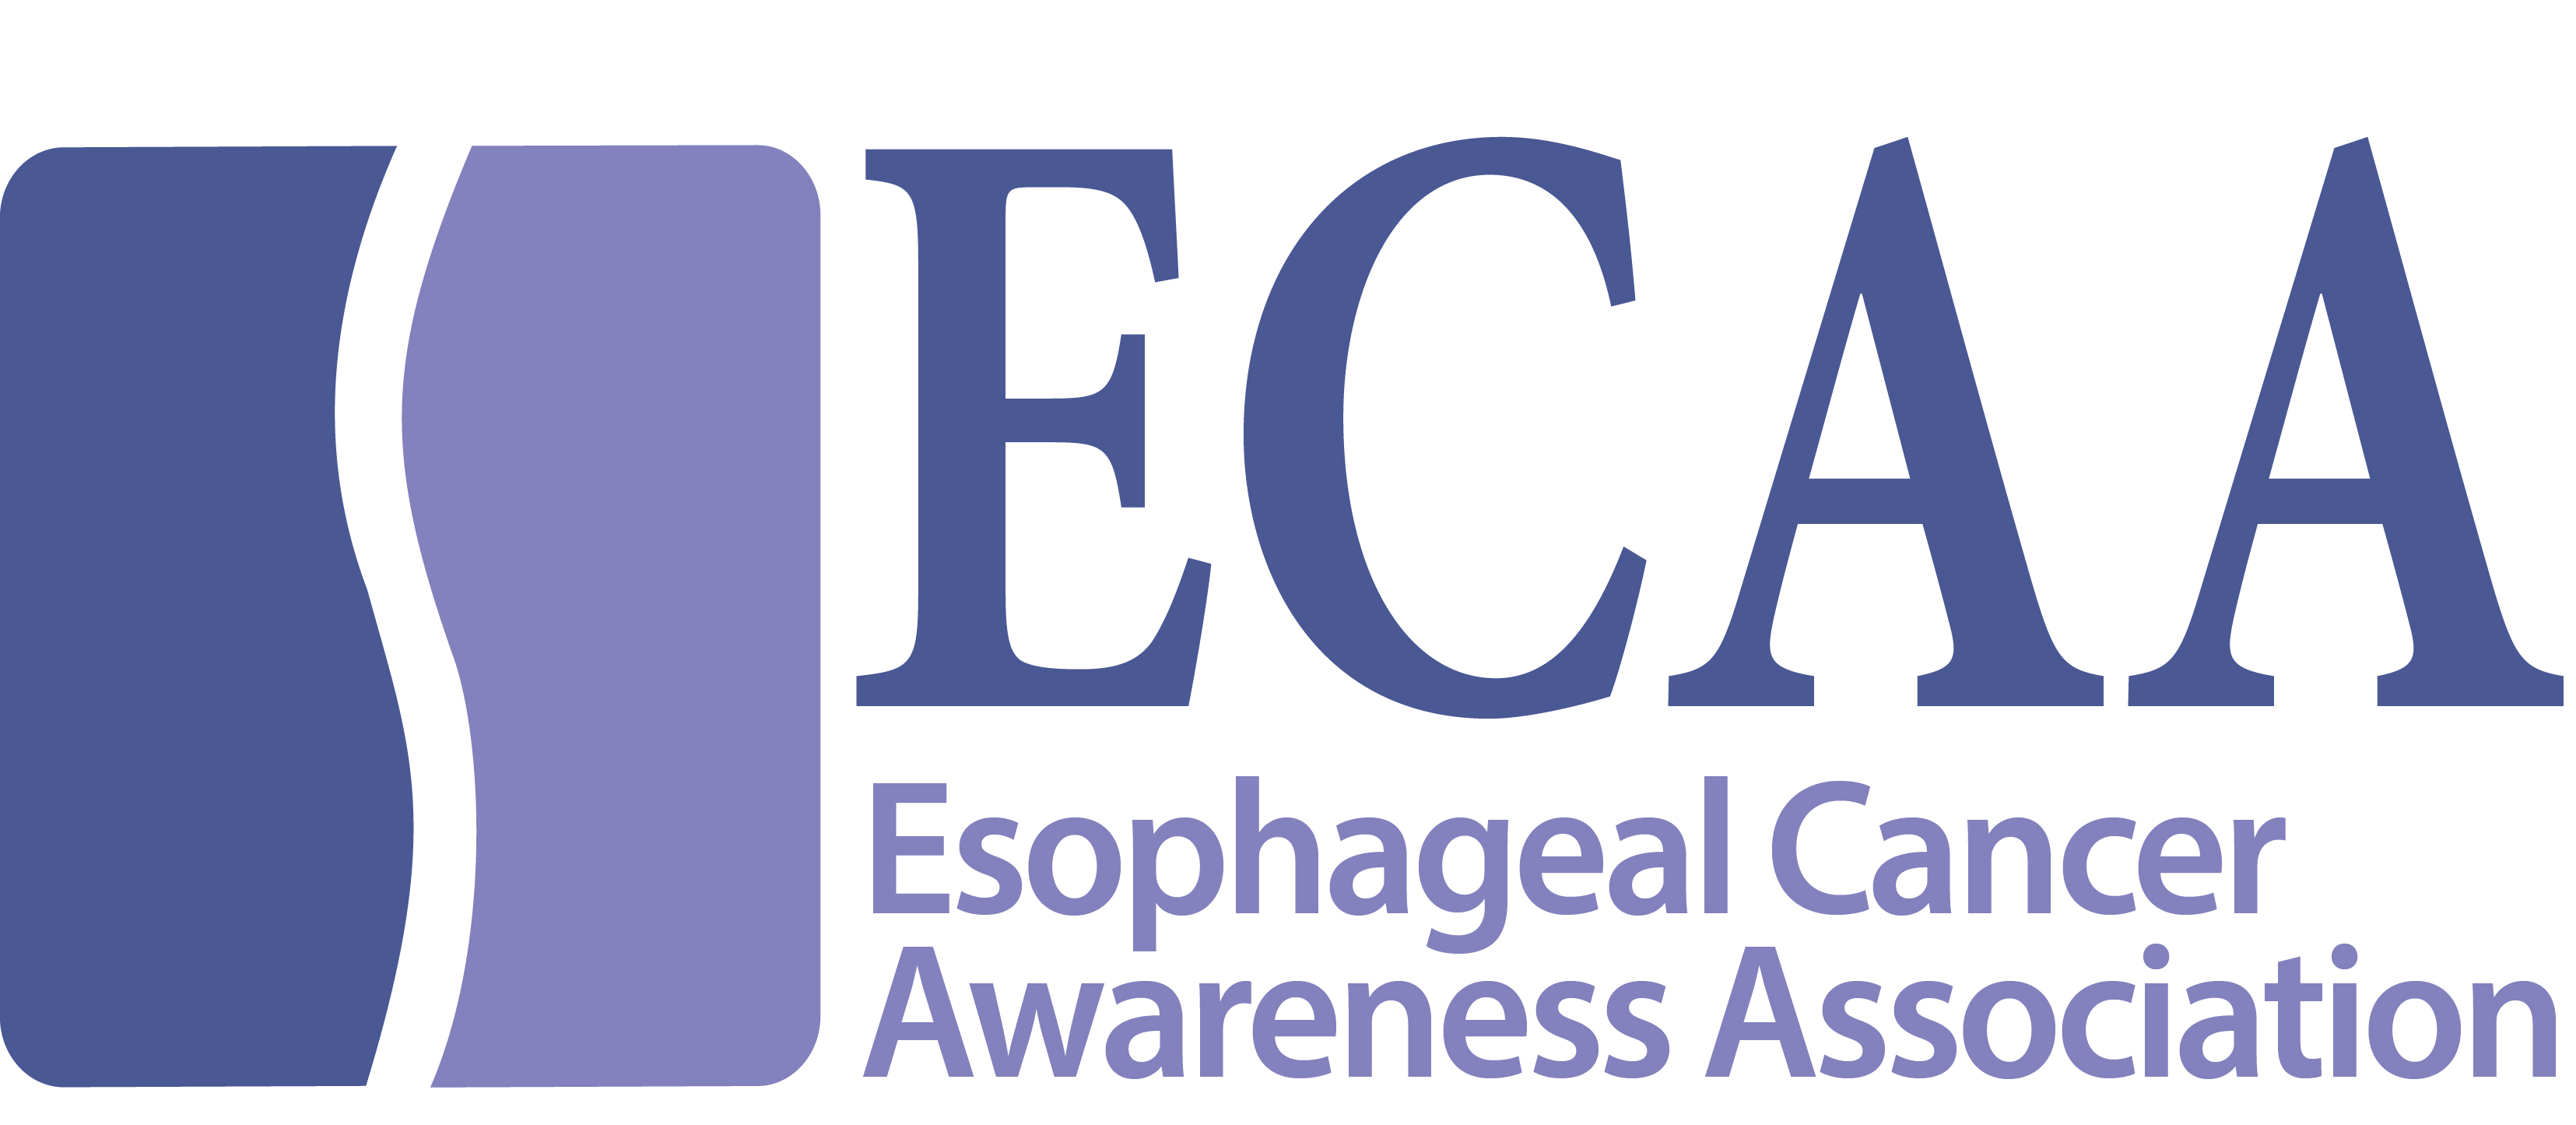 ECAA: Esophageal Cancer Awareness Association